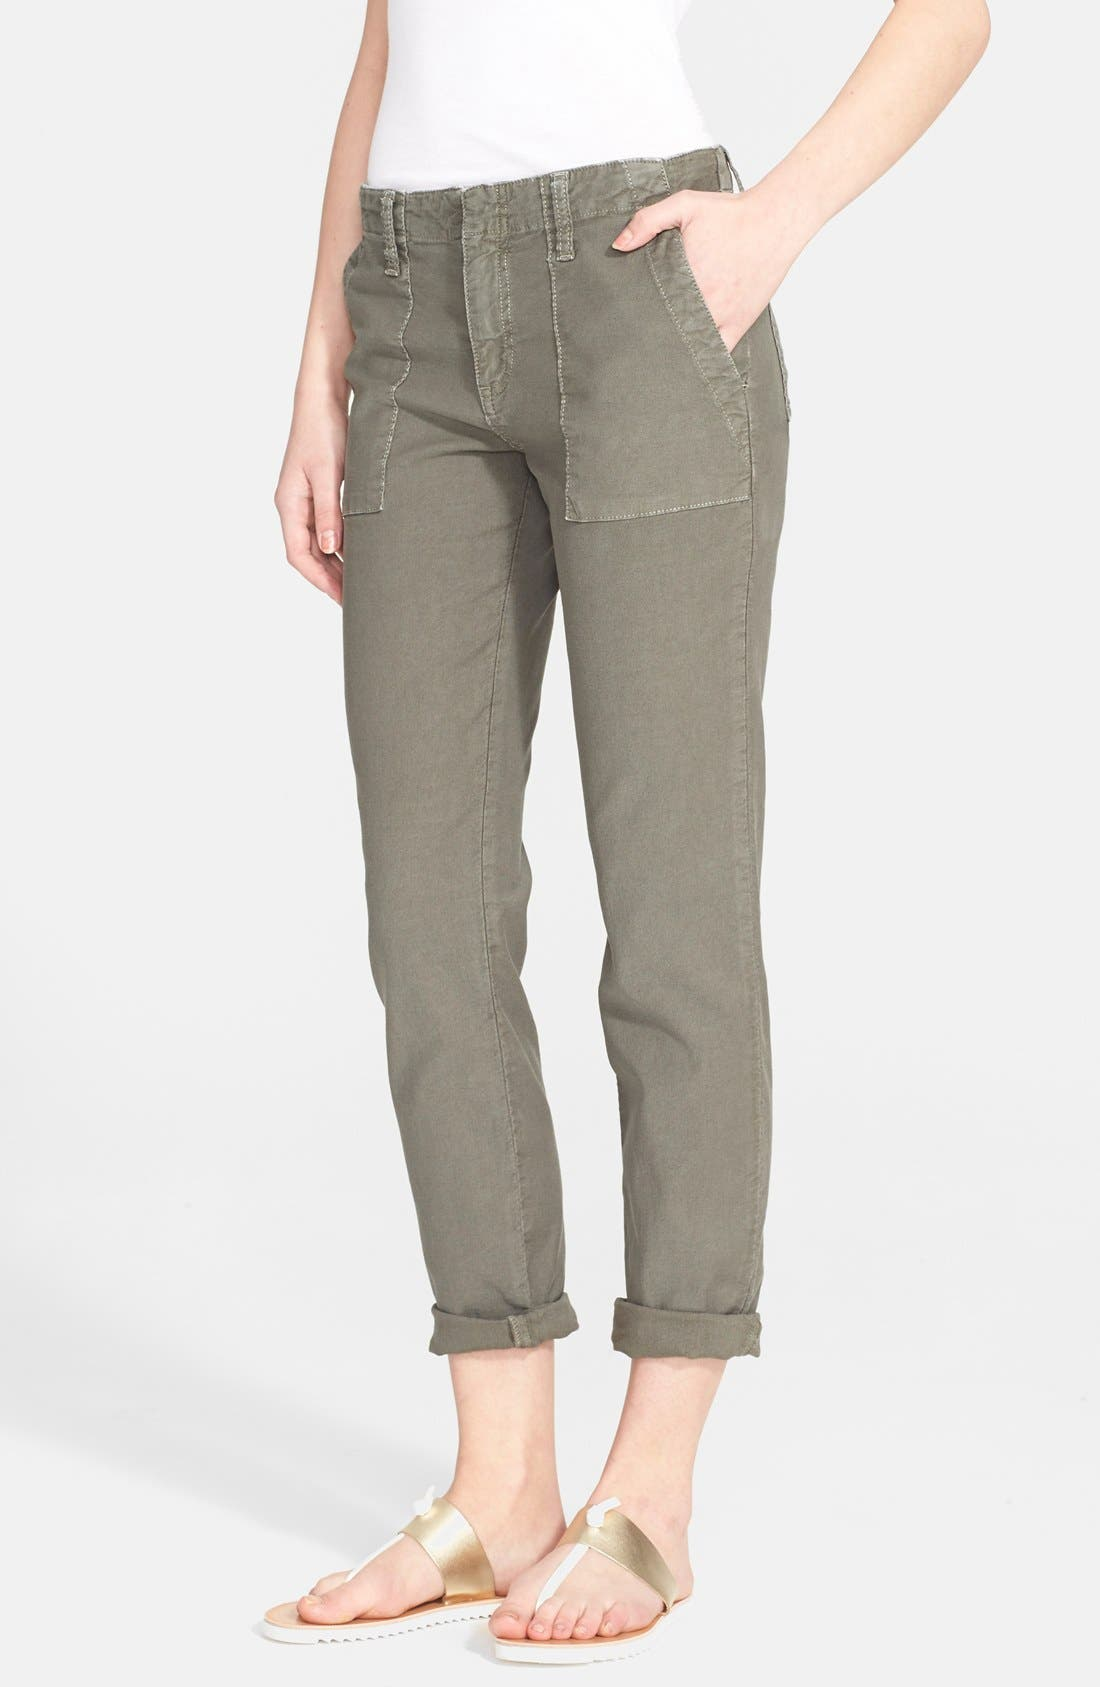 Joie Painter Cotton Linen Pants Nordstrom